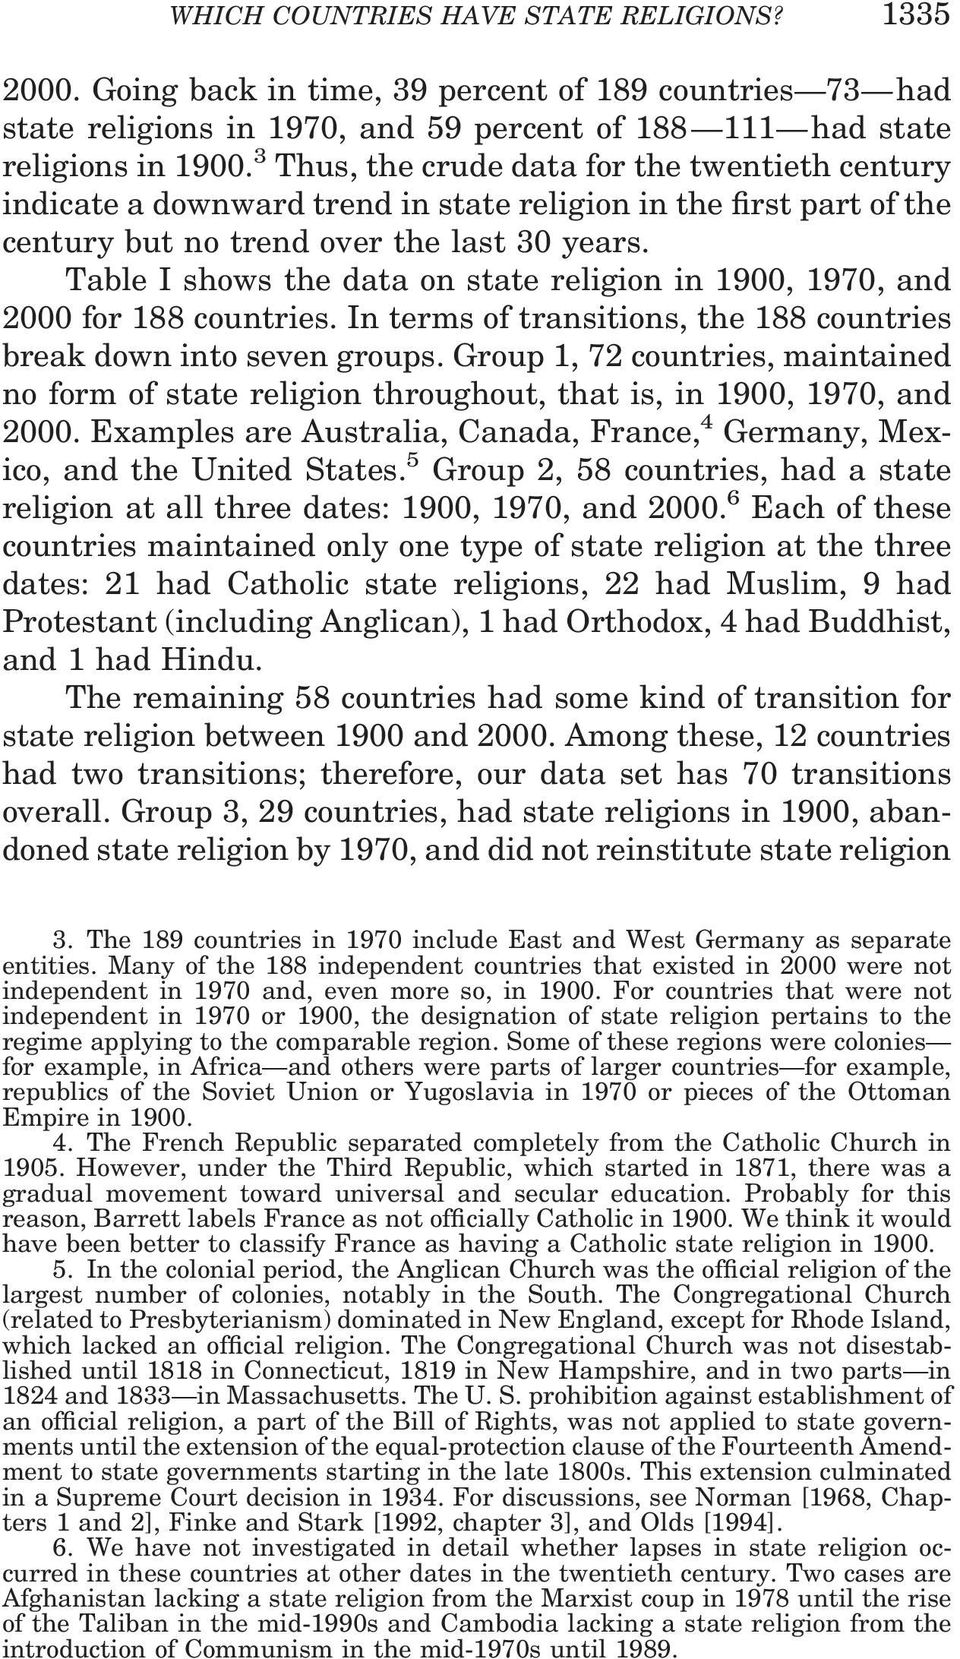 Table I shows the data on state religion in 1900, 1970, and 2000 for 188 countries. In terms of transitions, the 188 countries break down into seven groups.